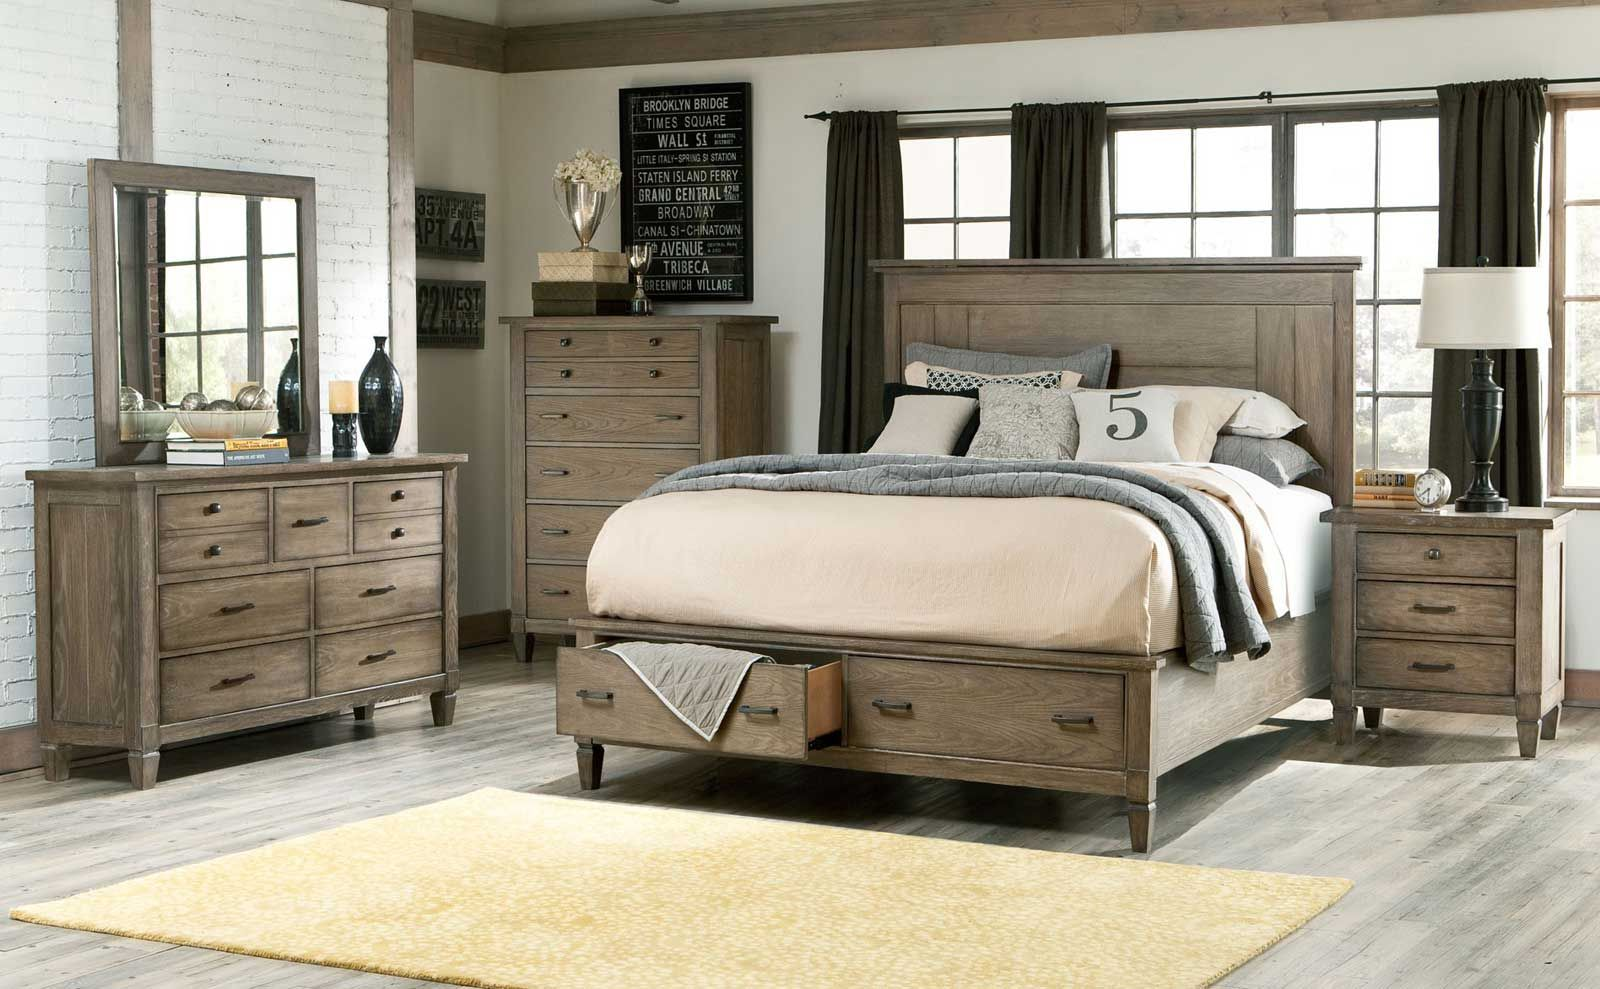 Exceptionnel Image Result For Wood King Size Bedroom Sets